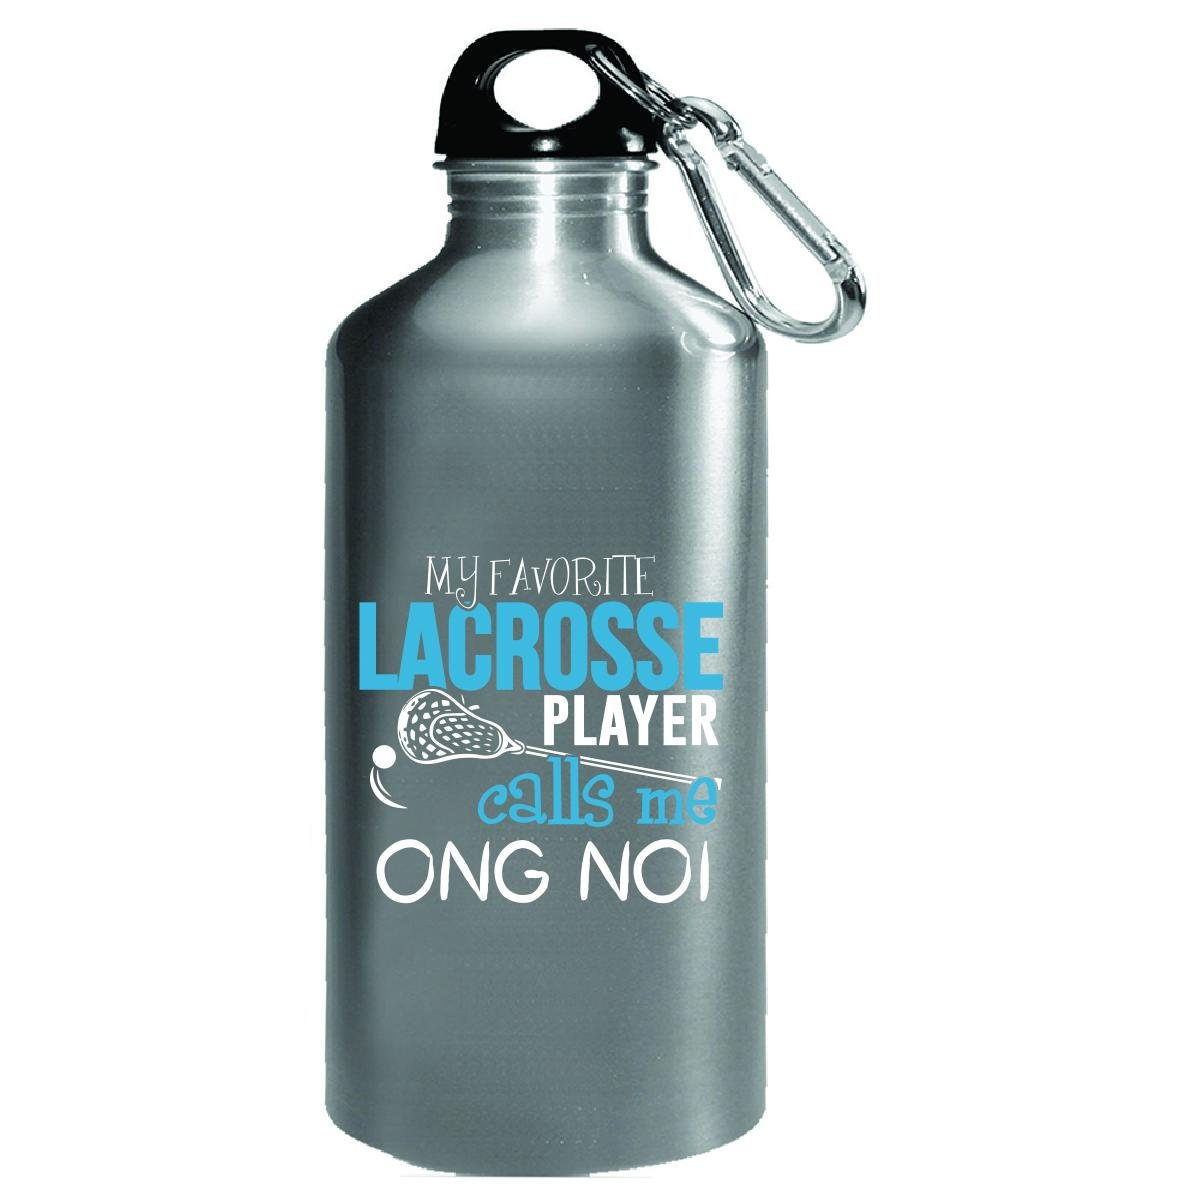 My Favorite Lacrosse Player Calls Me Grandpa Ong Noi - Water Bottle